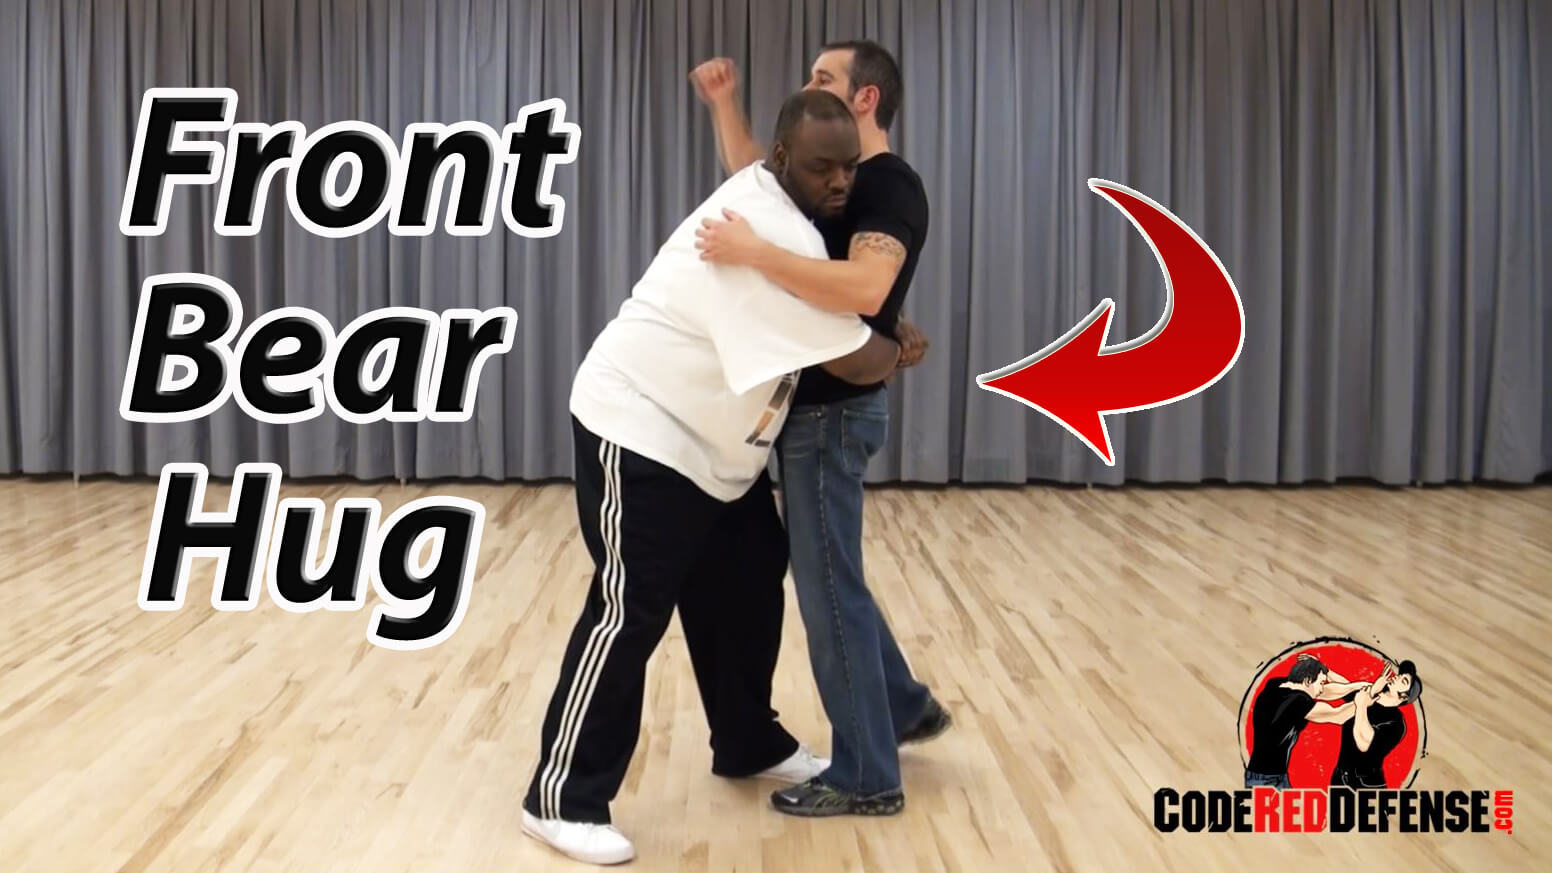 How to Defend Yourself Against a Front Bear Hug